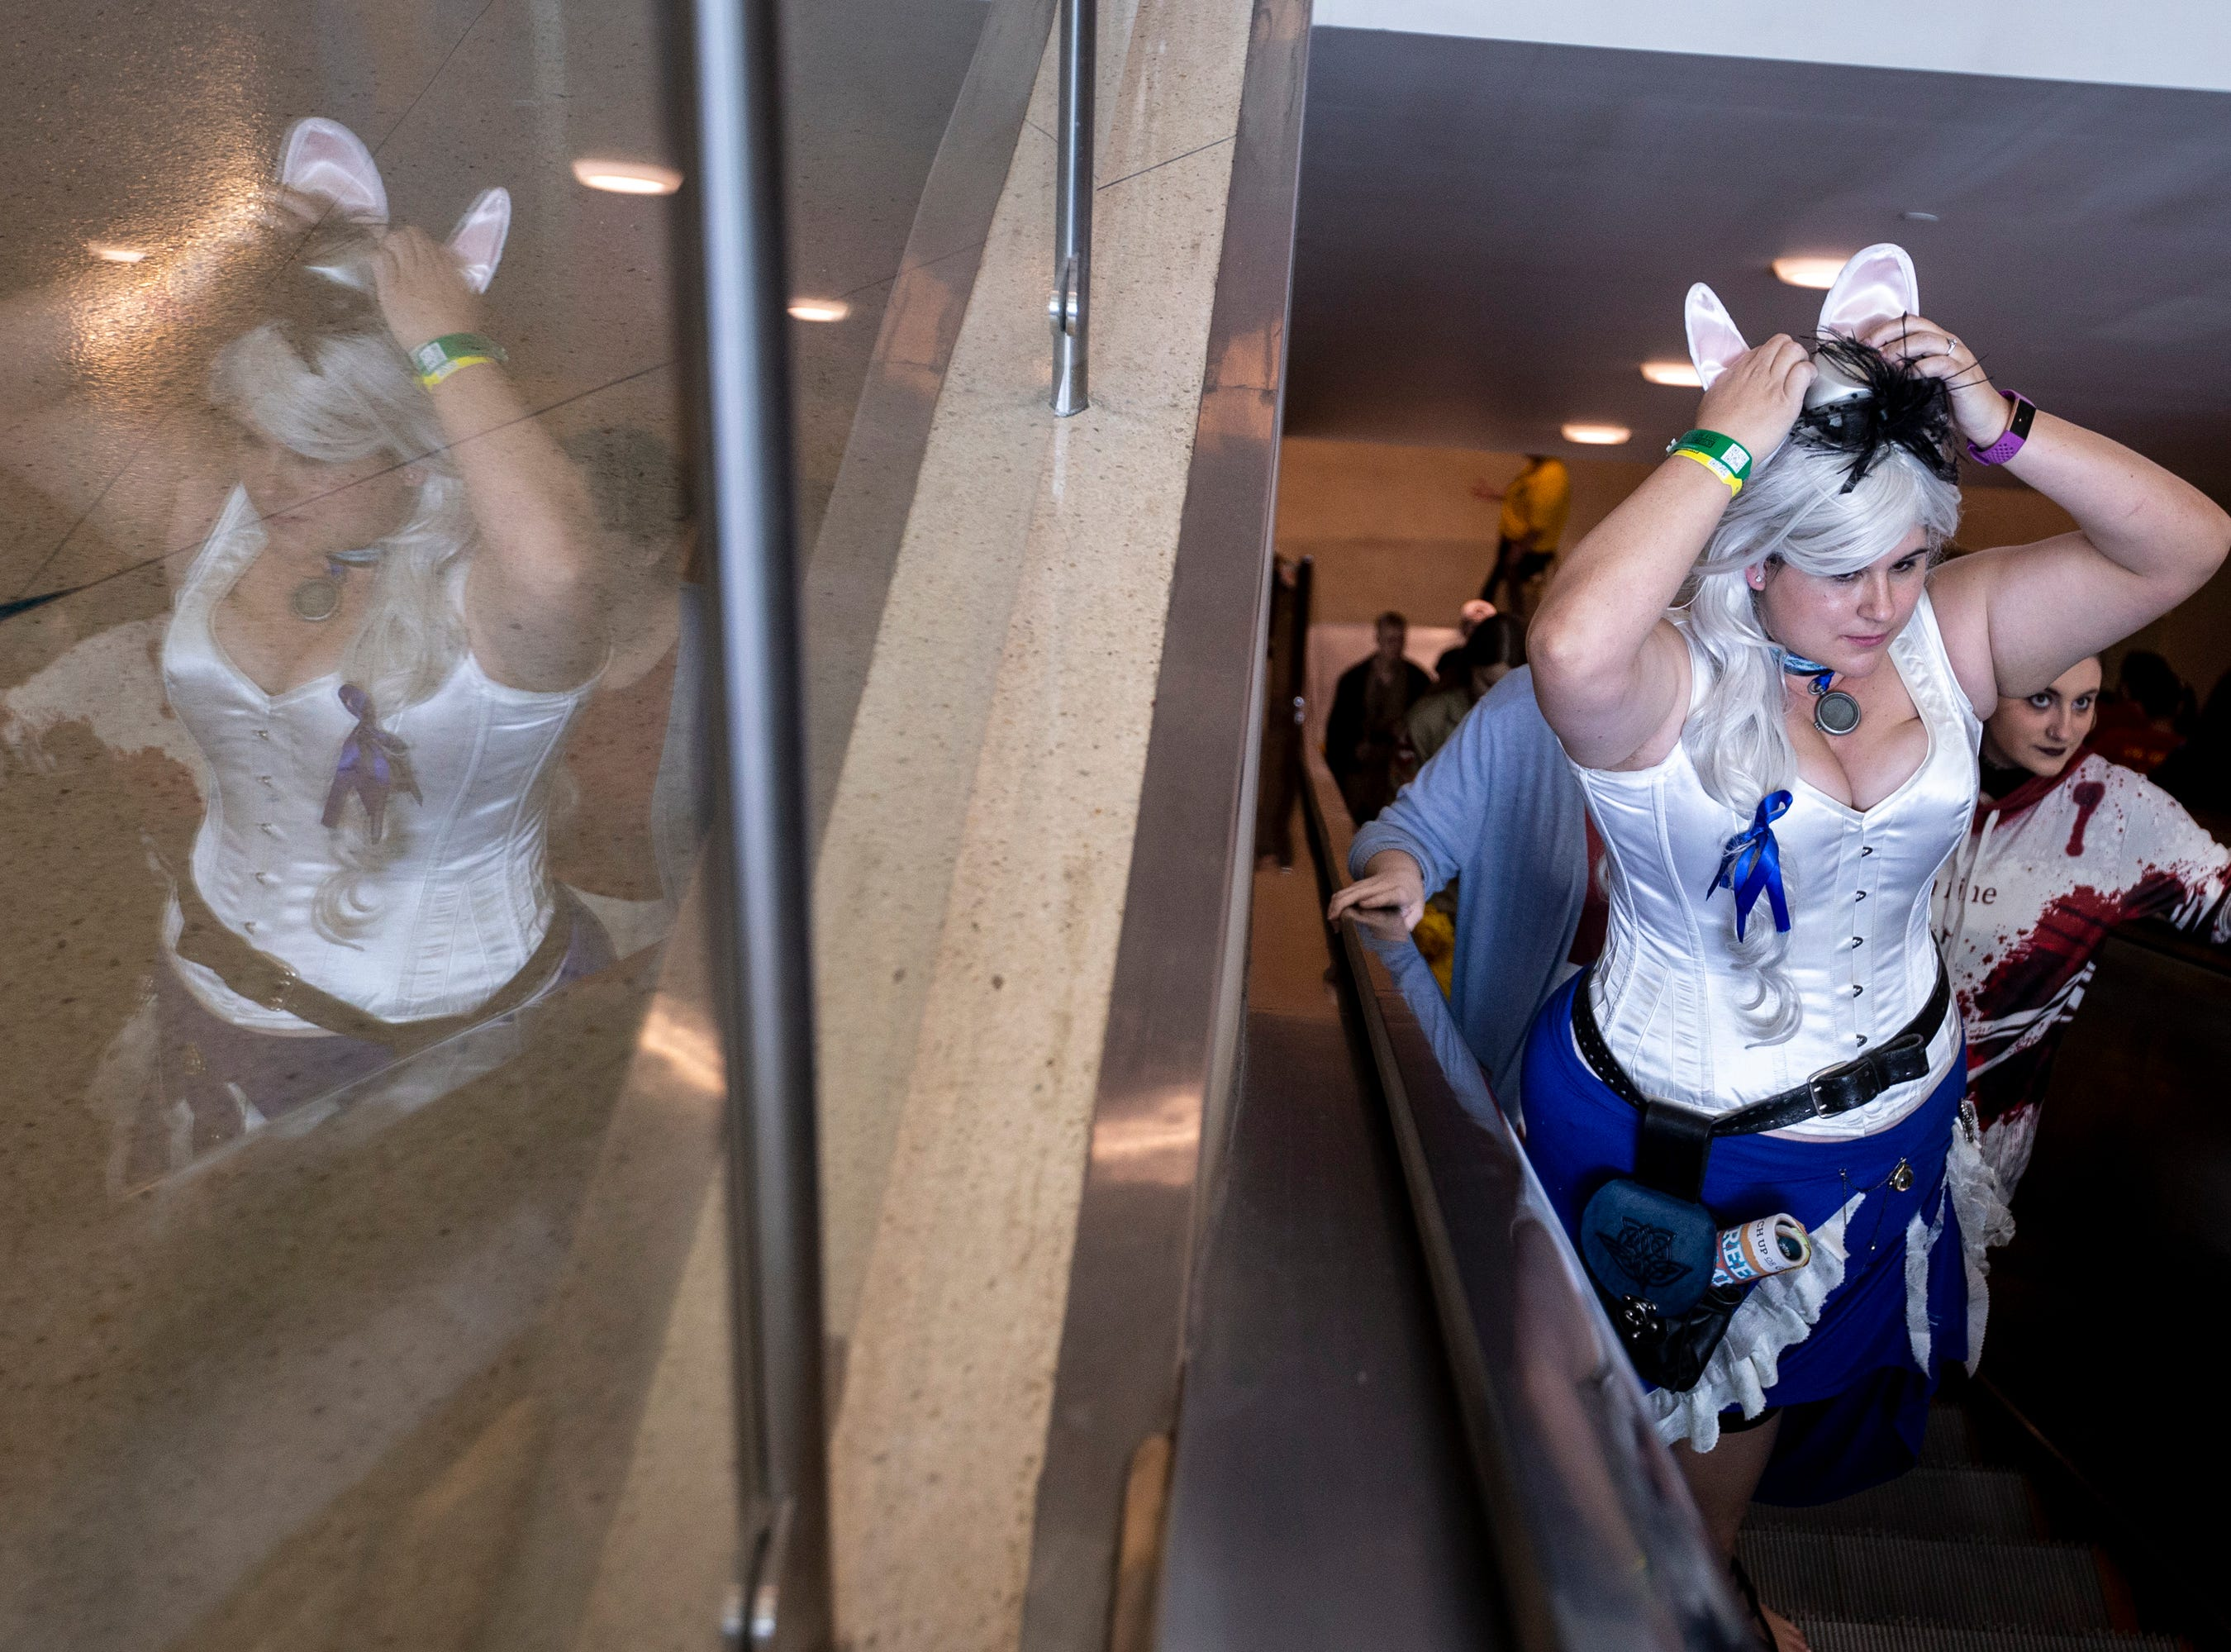 Allyx Blakesley rides an escalator during Day 1 of Phoenix Fan Fusion on Thursday, May 23, 2019, at the Phoenix Convention Center in Phoenix.